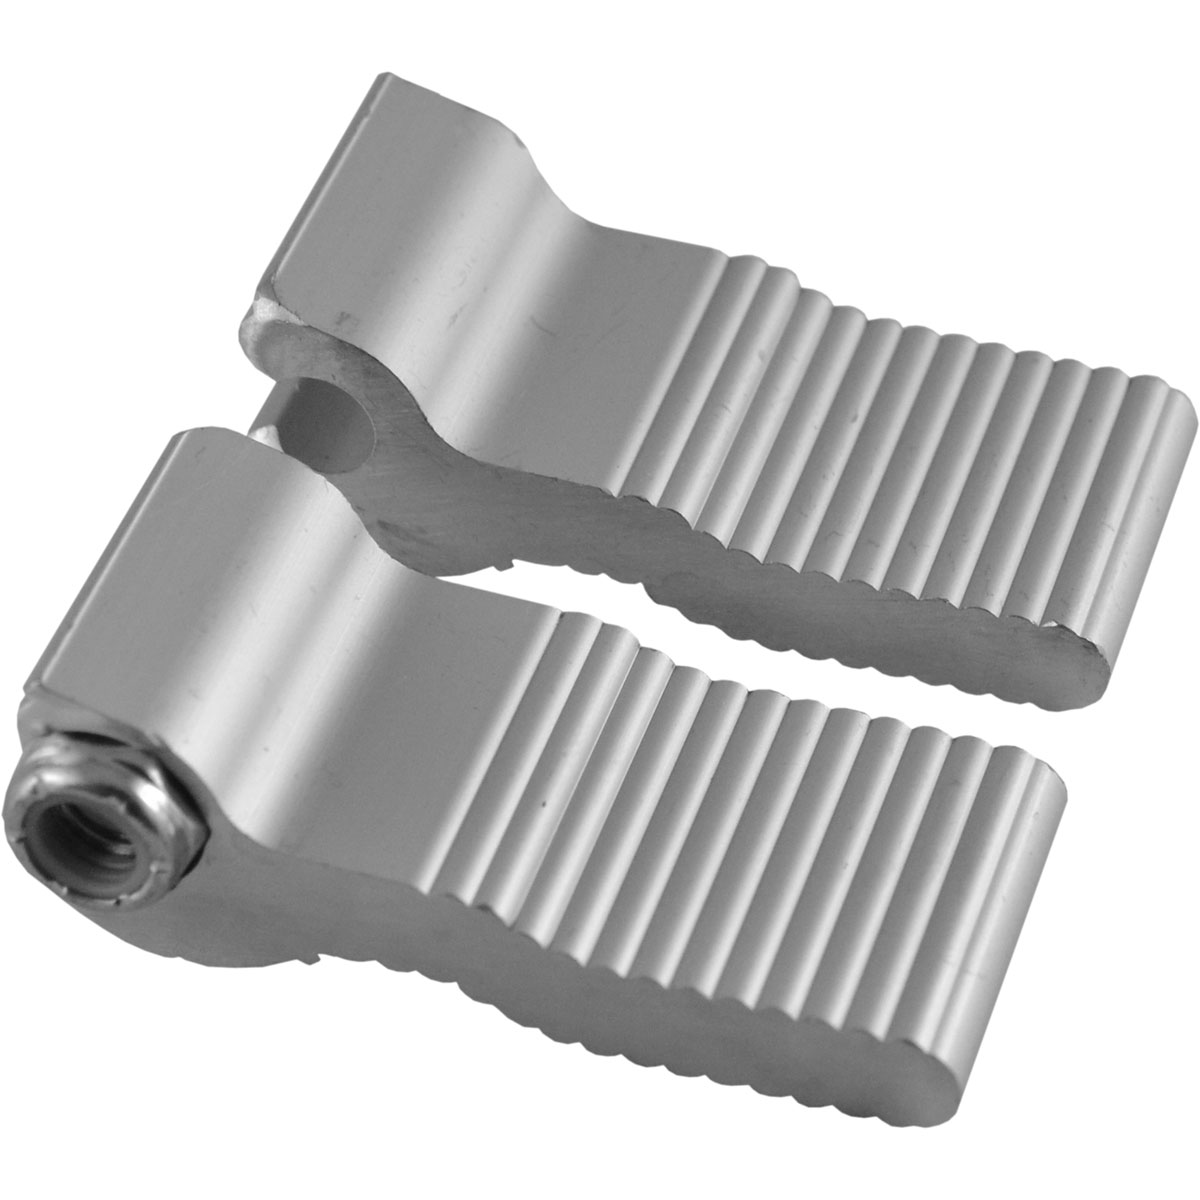 Yamaha Left and Right End Plugs for BiPosto Tenor Rail (Screws Not Included)